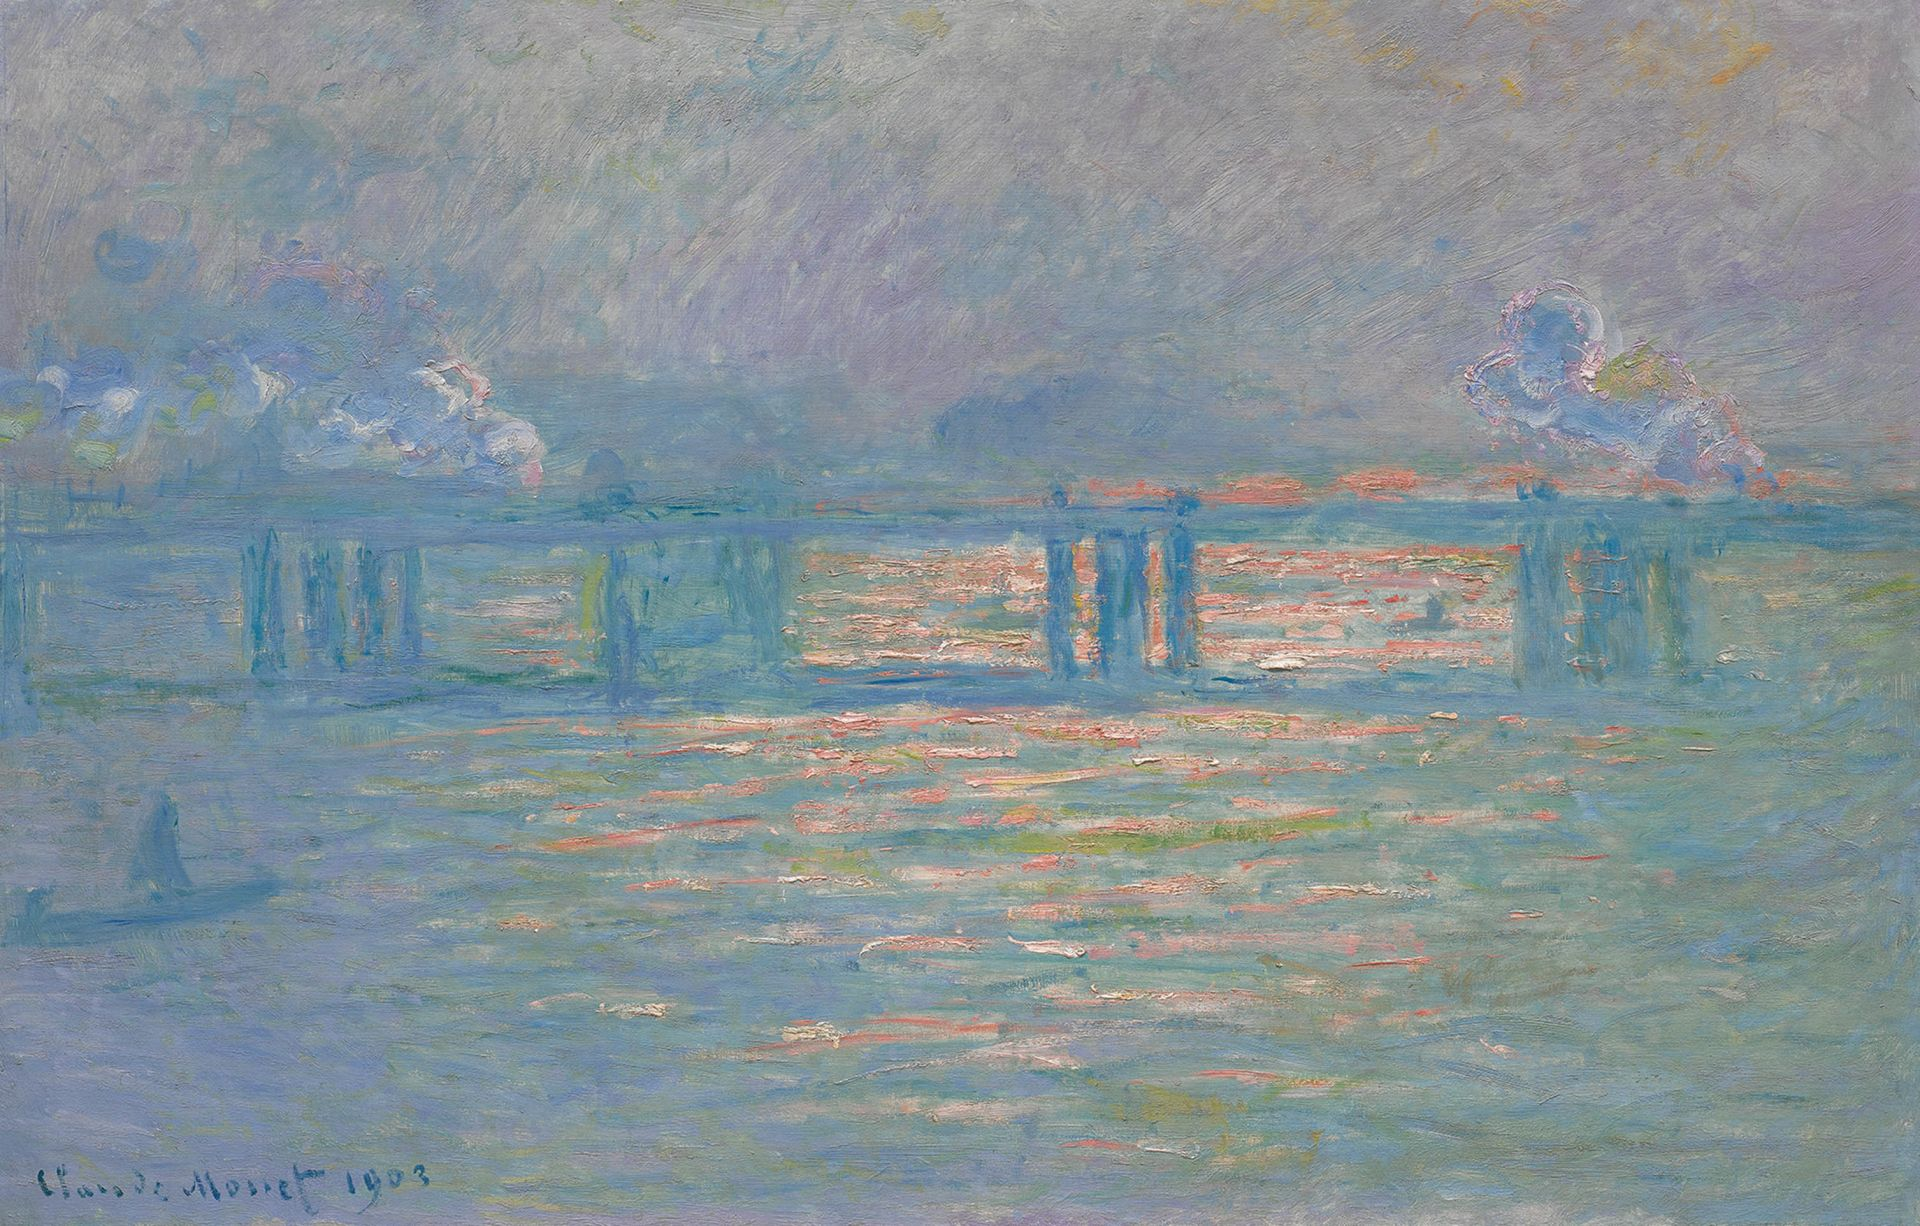 Claude Monet's 'Charing Cross Bridge' Could Fetch $30 Million At Sotheby's